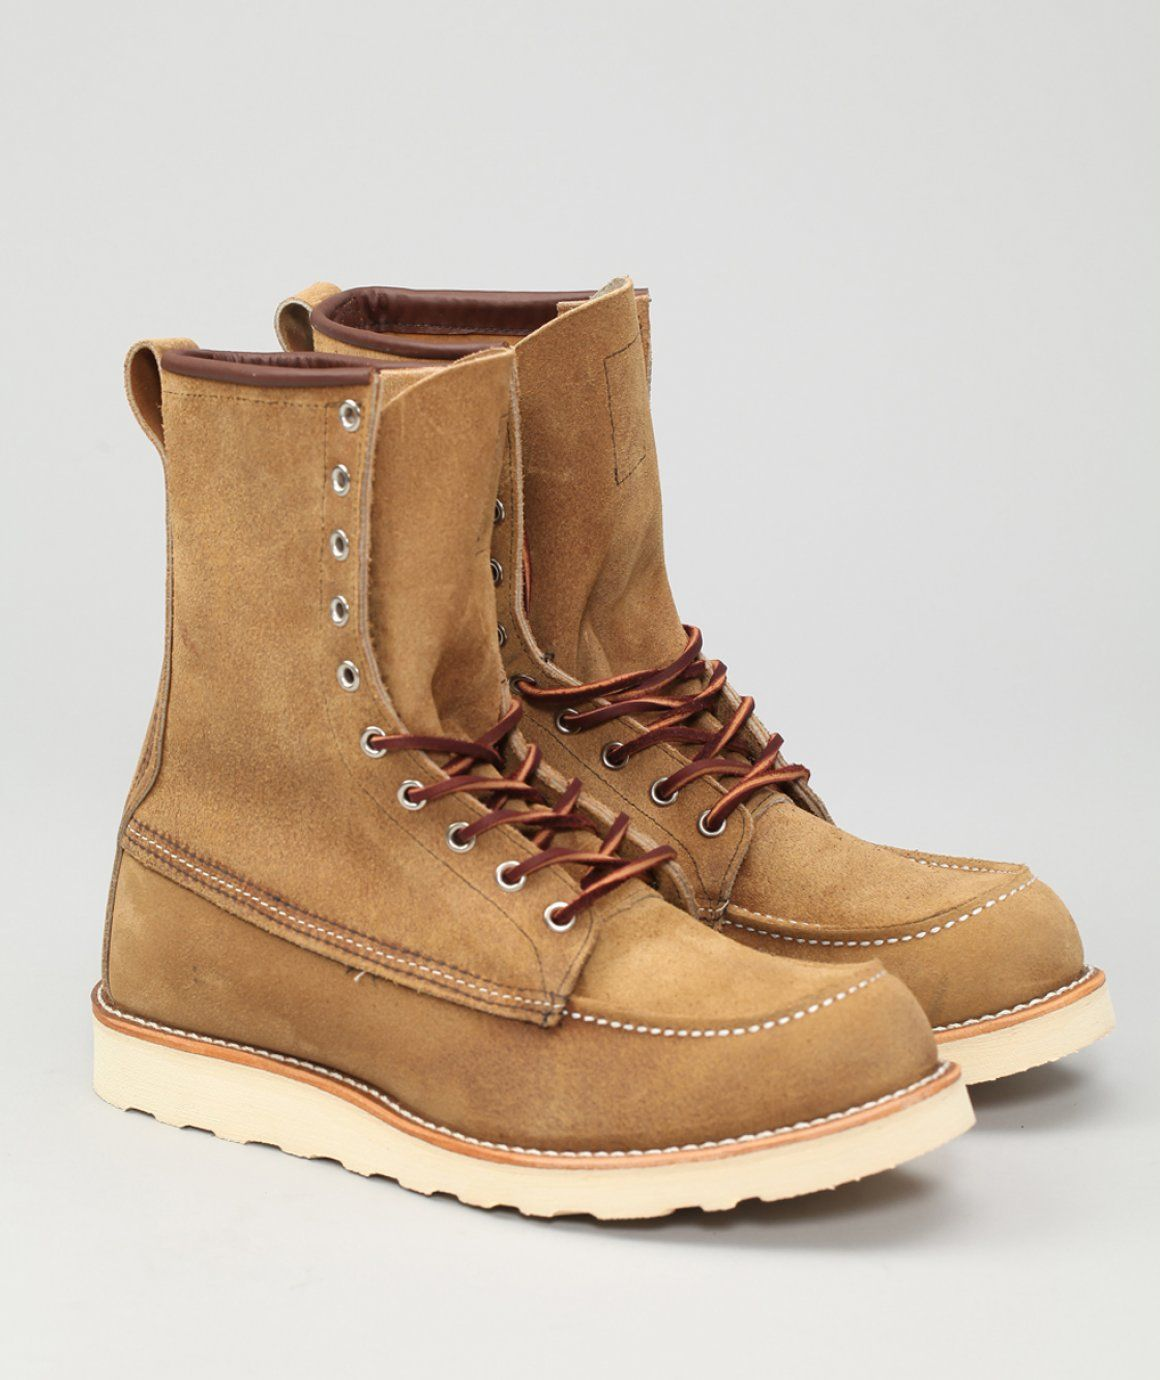 a59452e8aff Red Wing - 879 8-inch Moc Toe | Sweets | Shoe boots, Boots ...